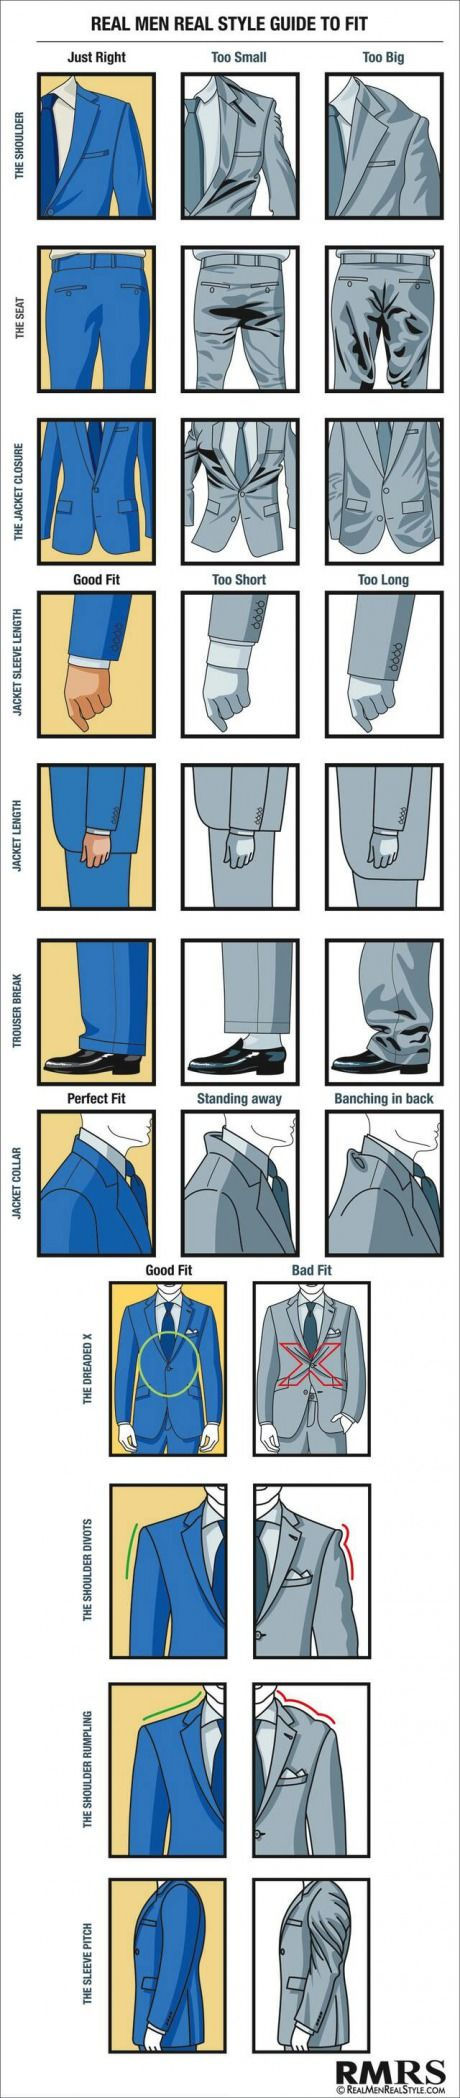 Men's guide to proper fitting of suits